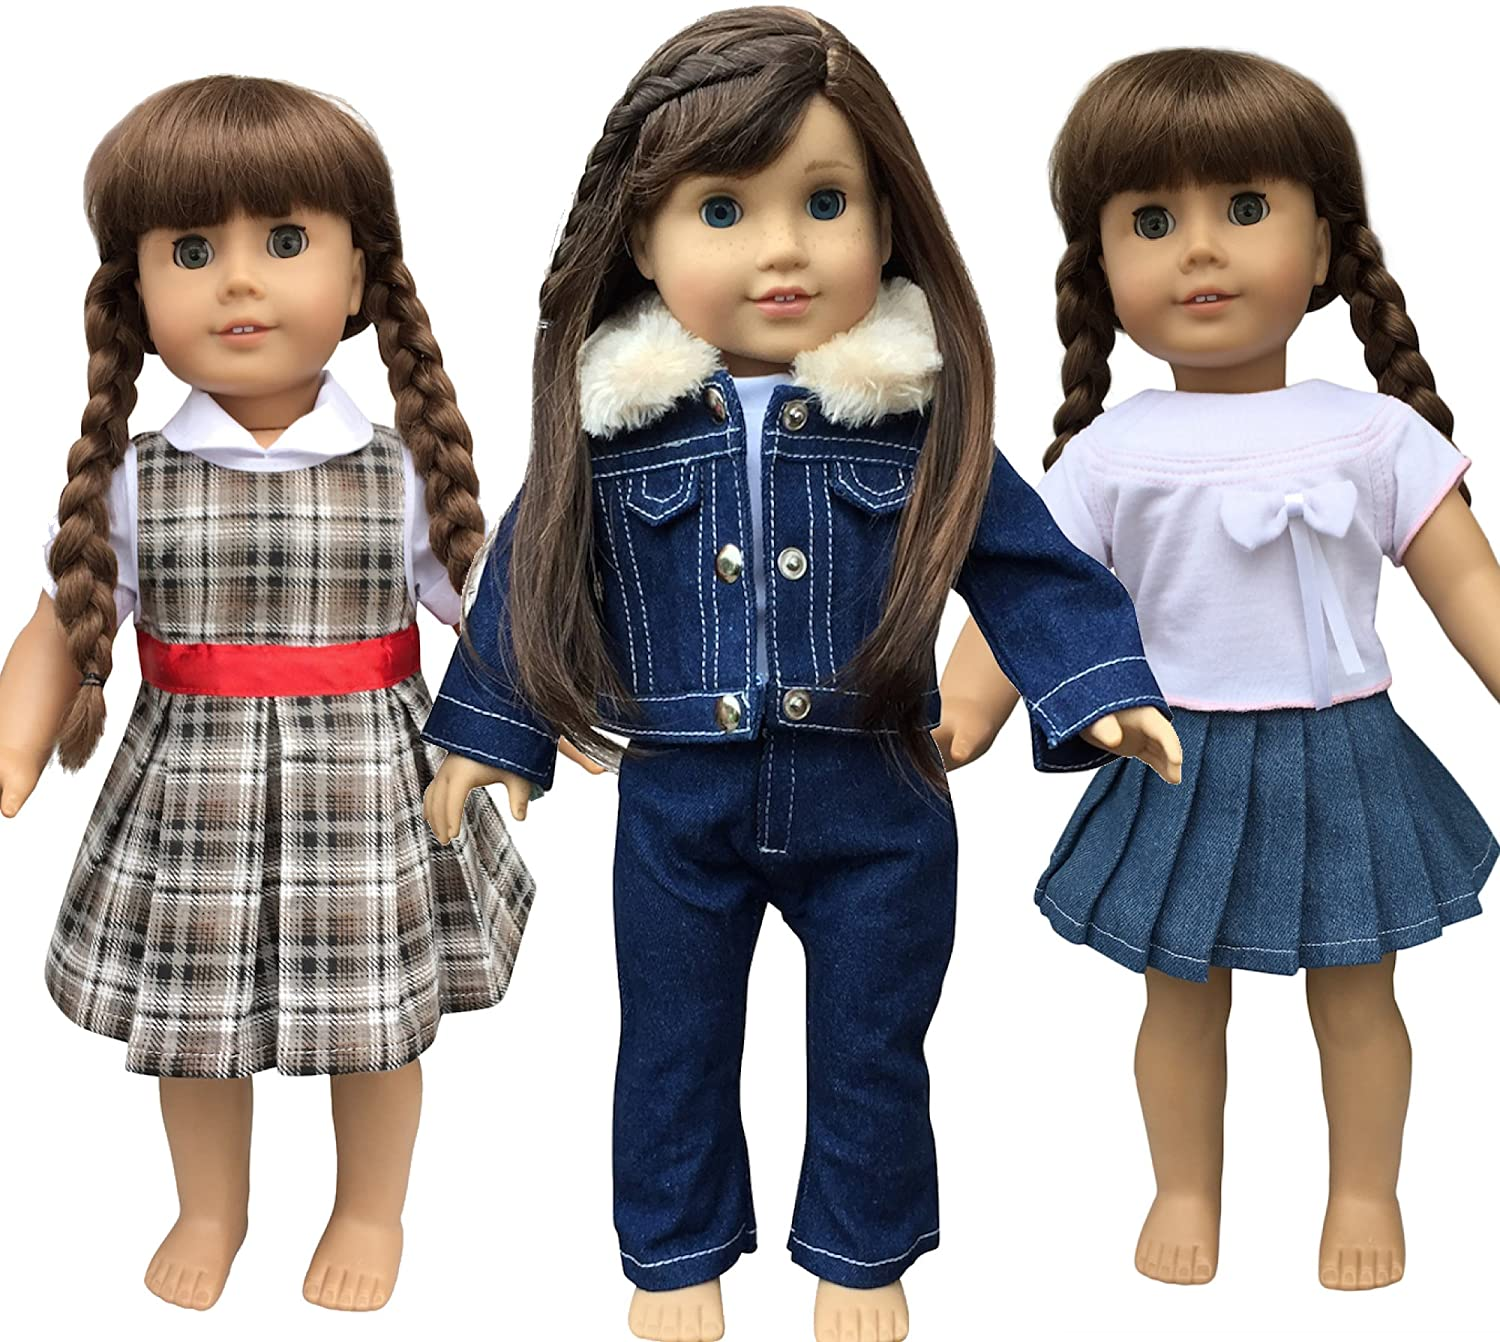 Amazon.com  In-style American Girl Doll Clothes Accessories fits Our  Generation dolls 986ce0f43